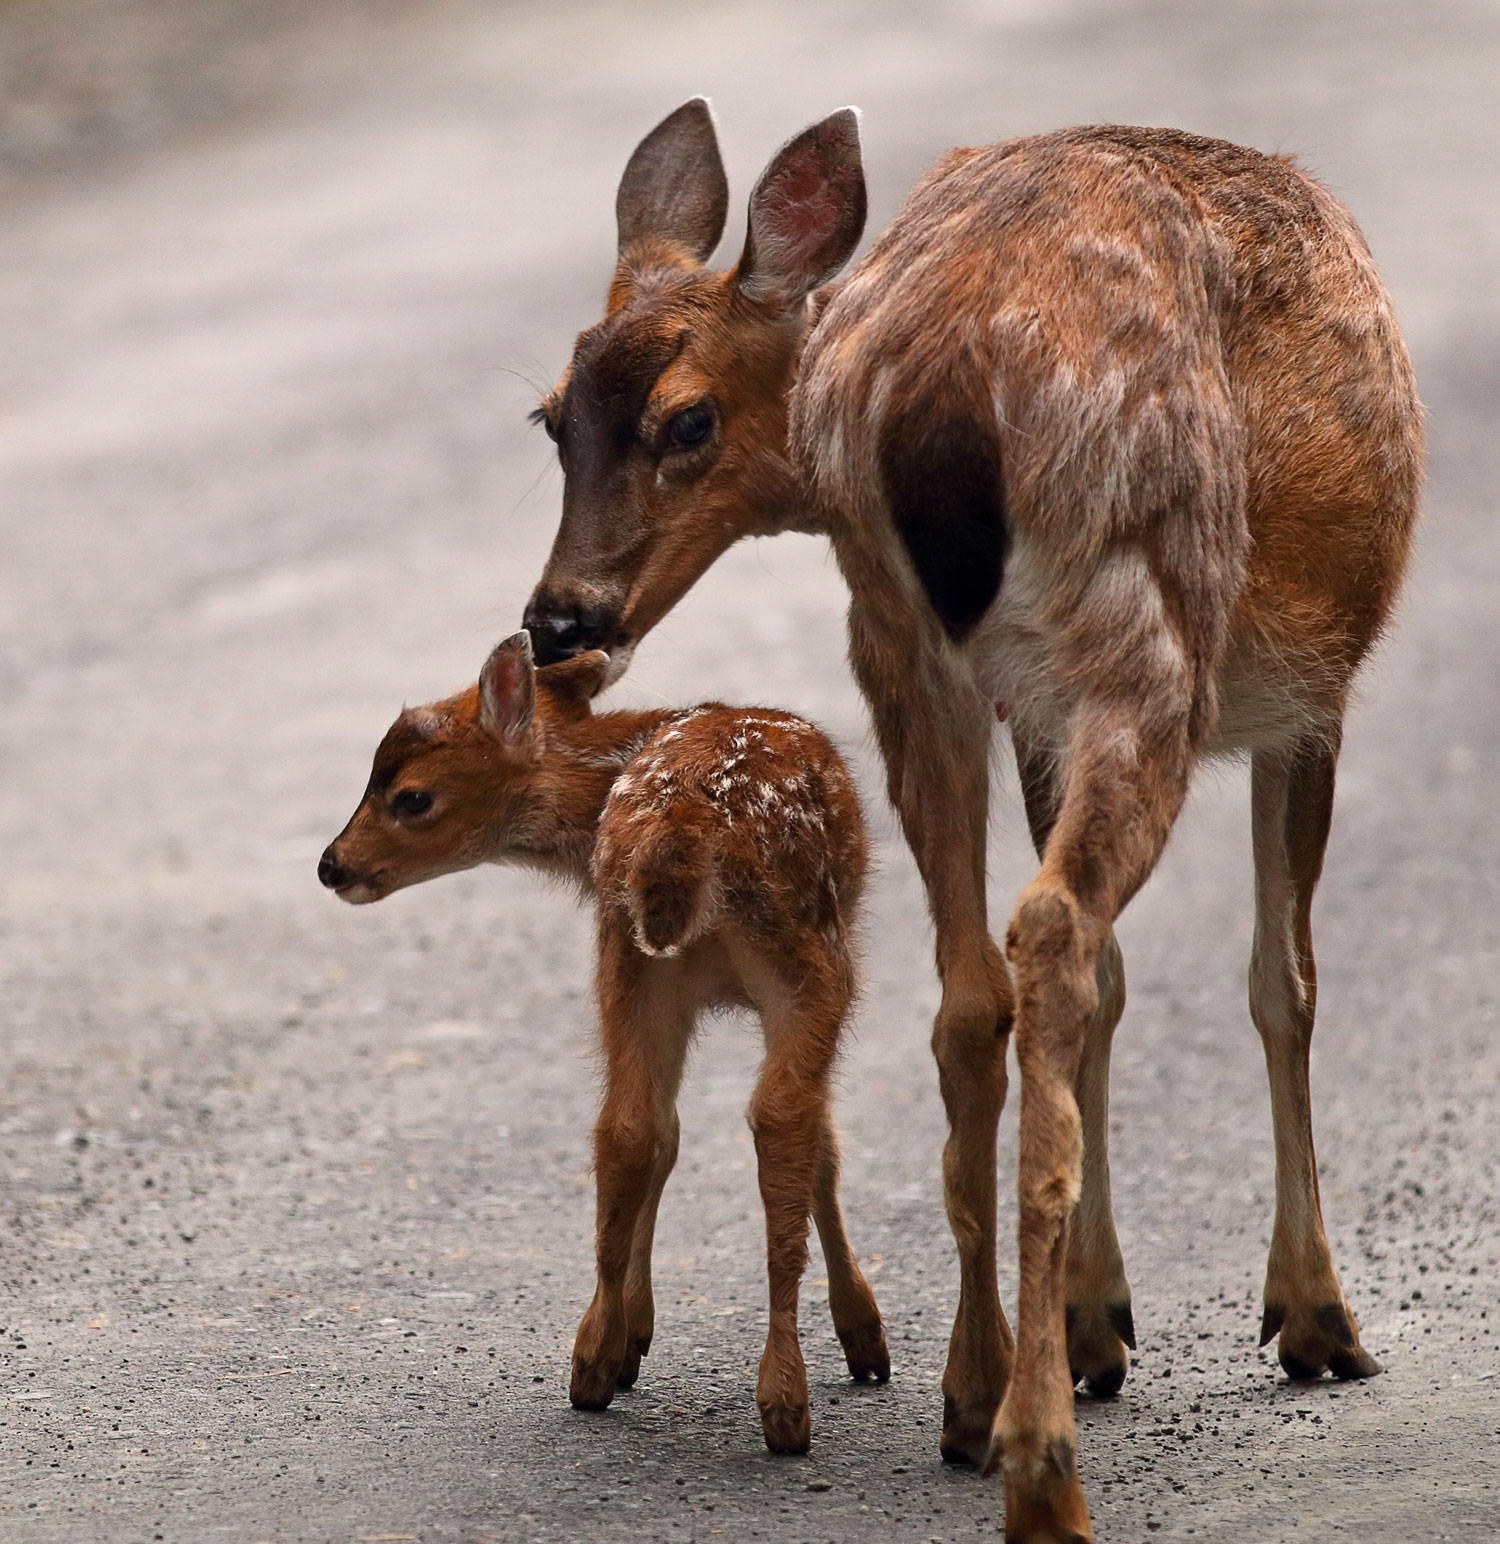 Sitka blacktail doe and fawn in Southeast Alaska mother licking fawn